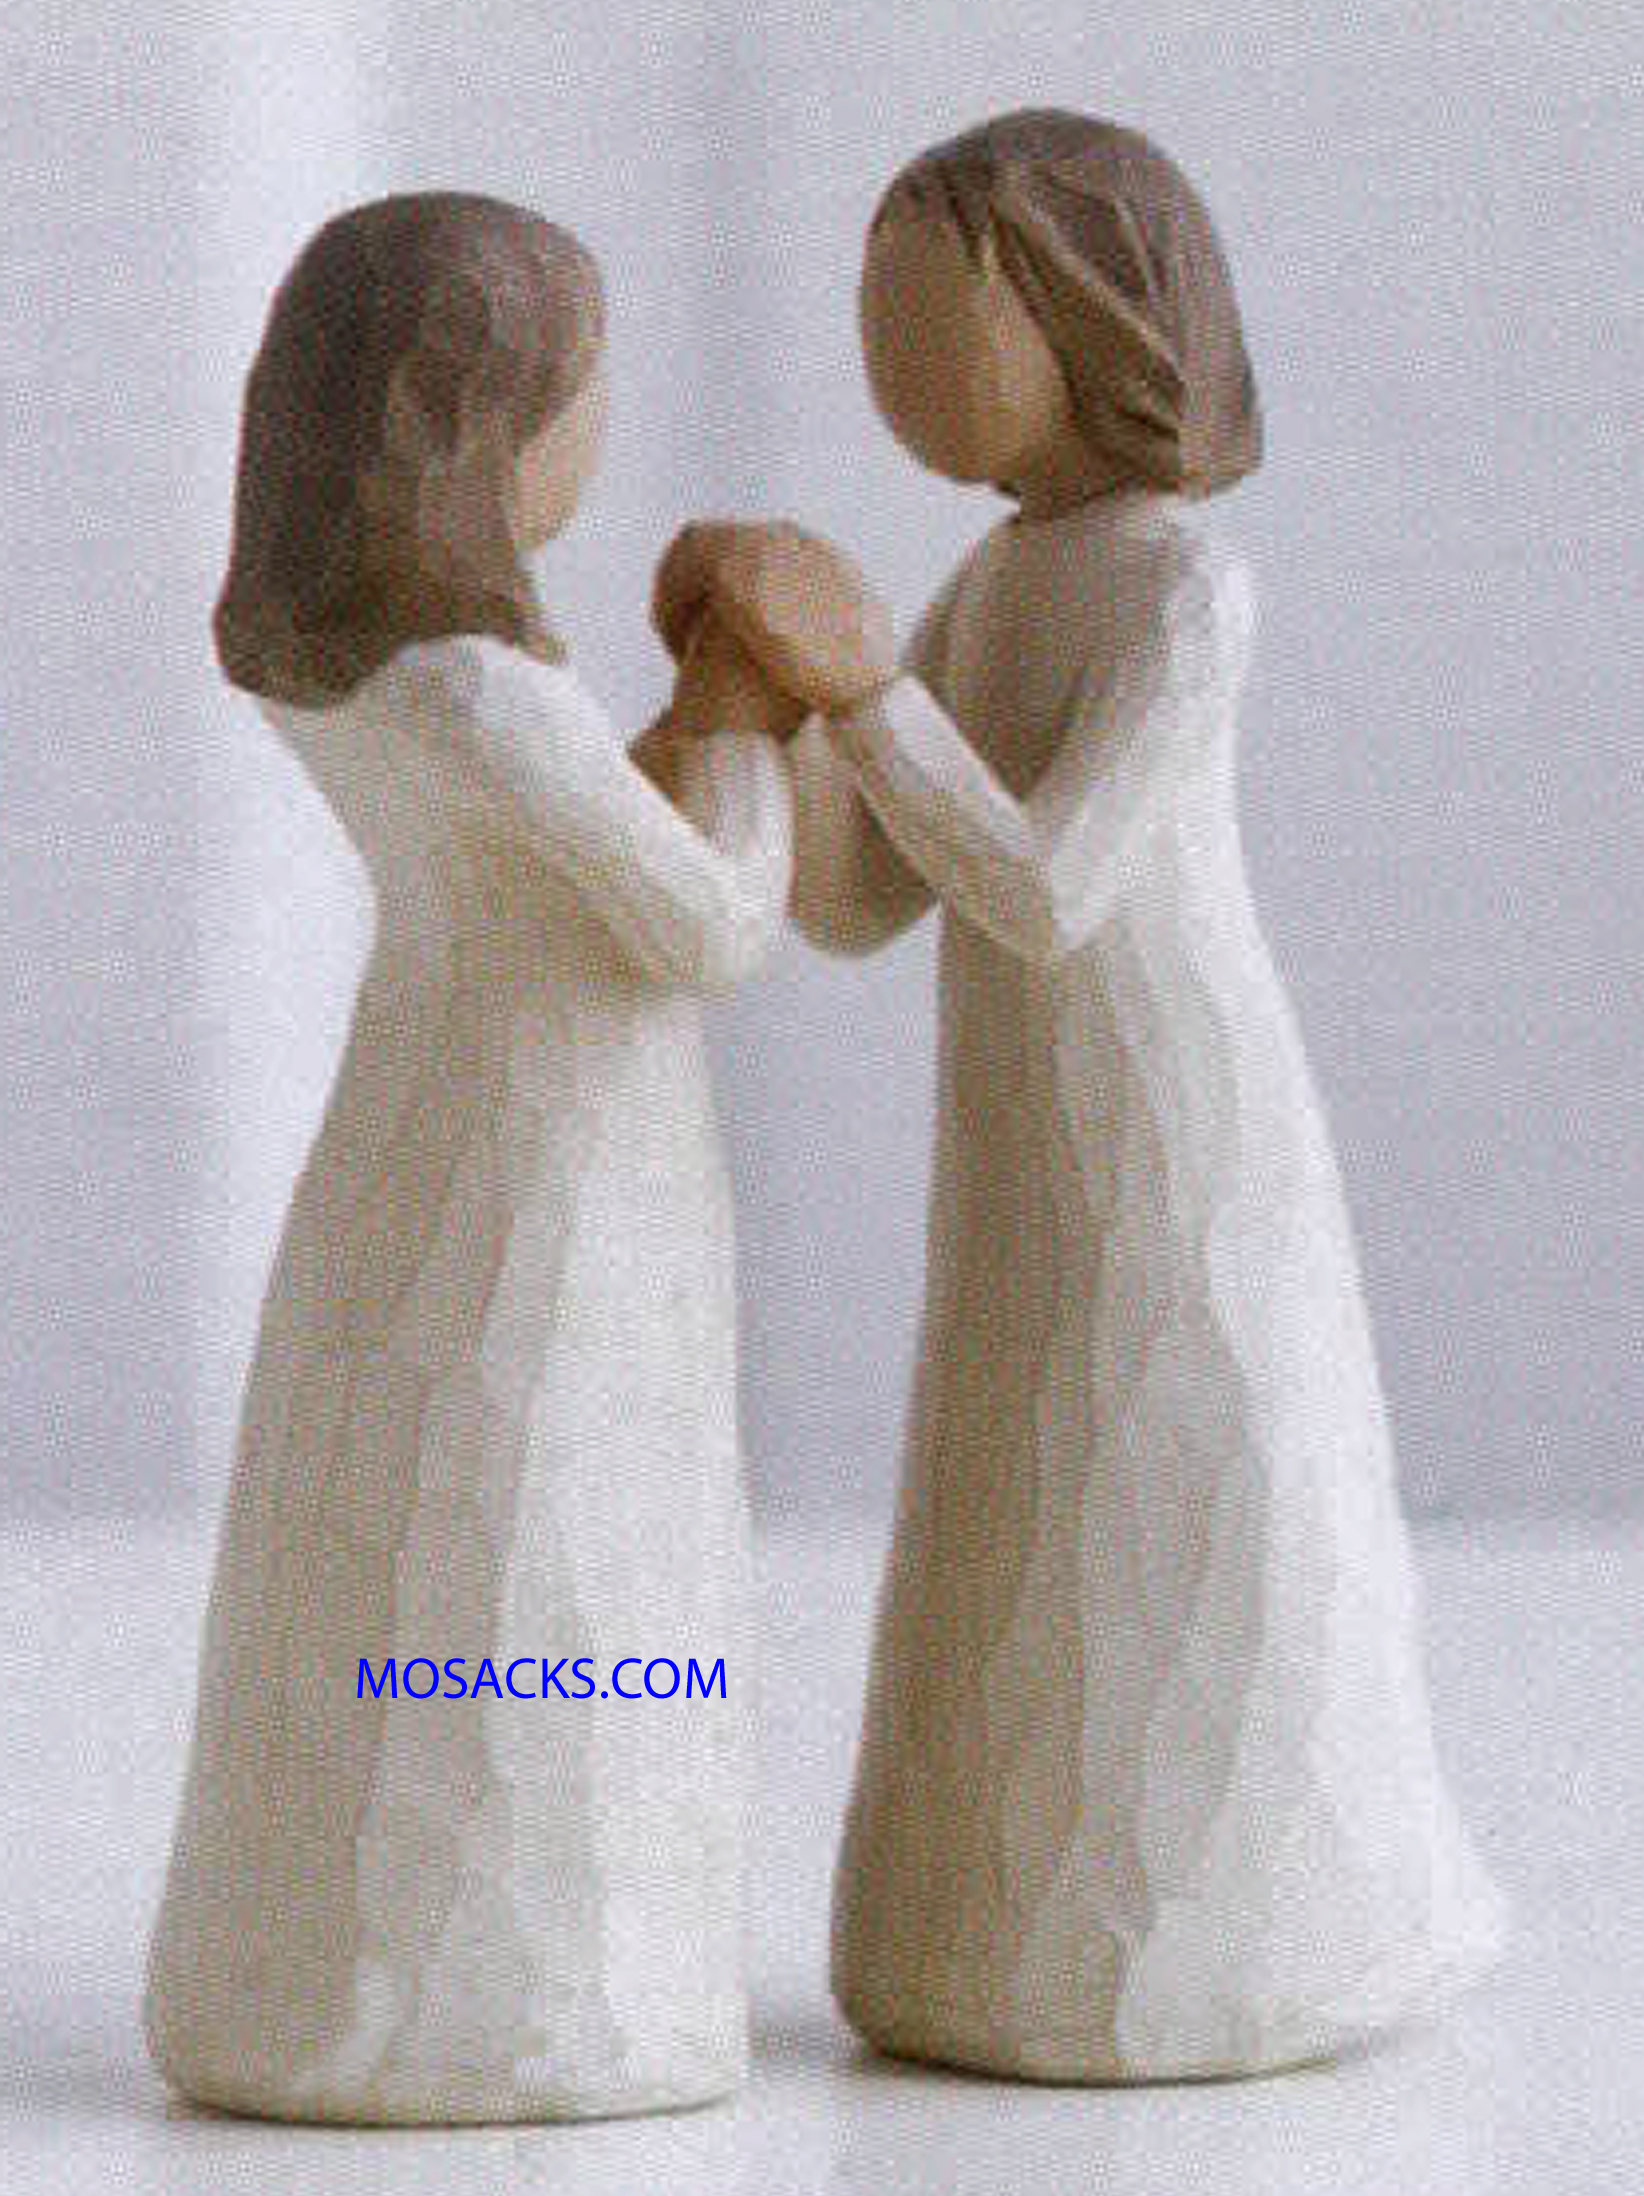 "Willow Tree Figurine Sisters by Heart Celebrating a treasured friendship of sharing and understanding 4.5"" H 26023 with FREE SHIPPING on $100.00 Orders"